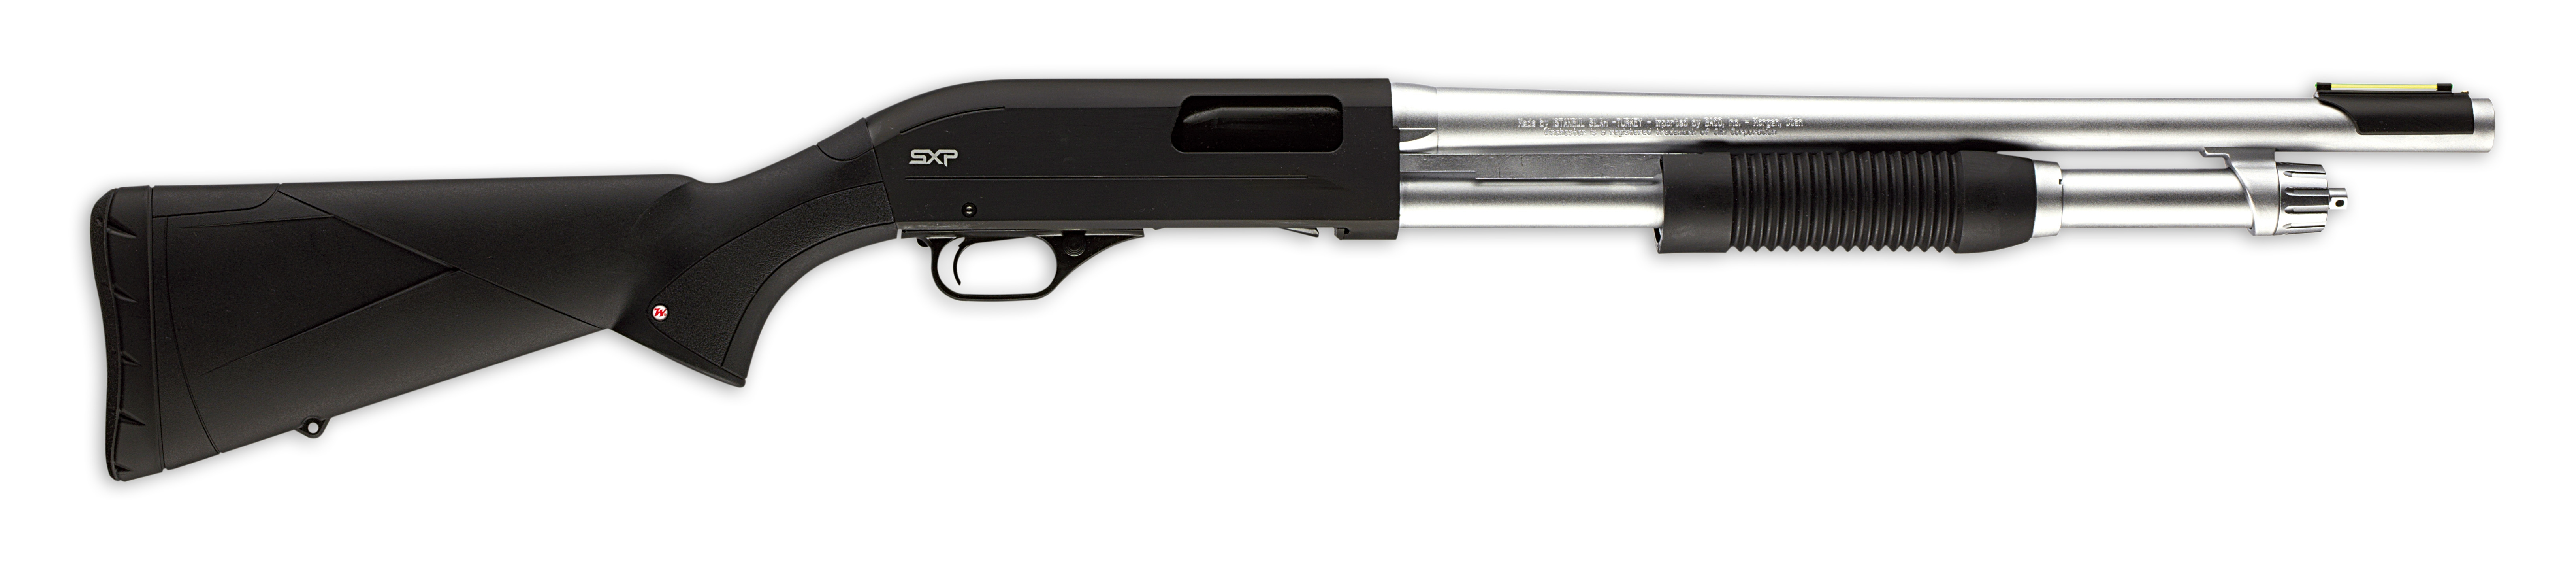 Winchester SXP Marine Defender Pump-Action Shotgun 02